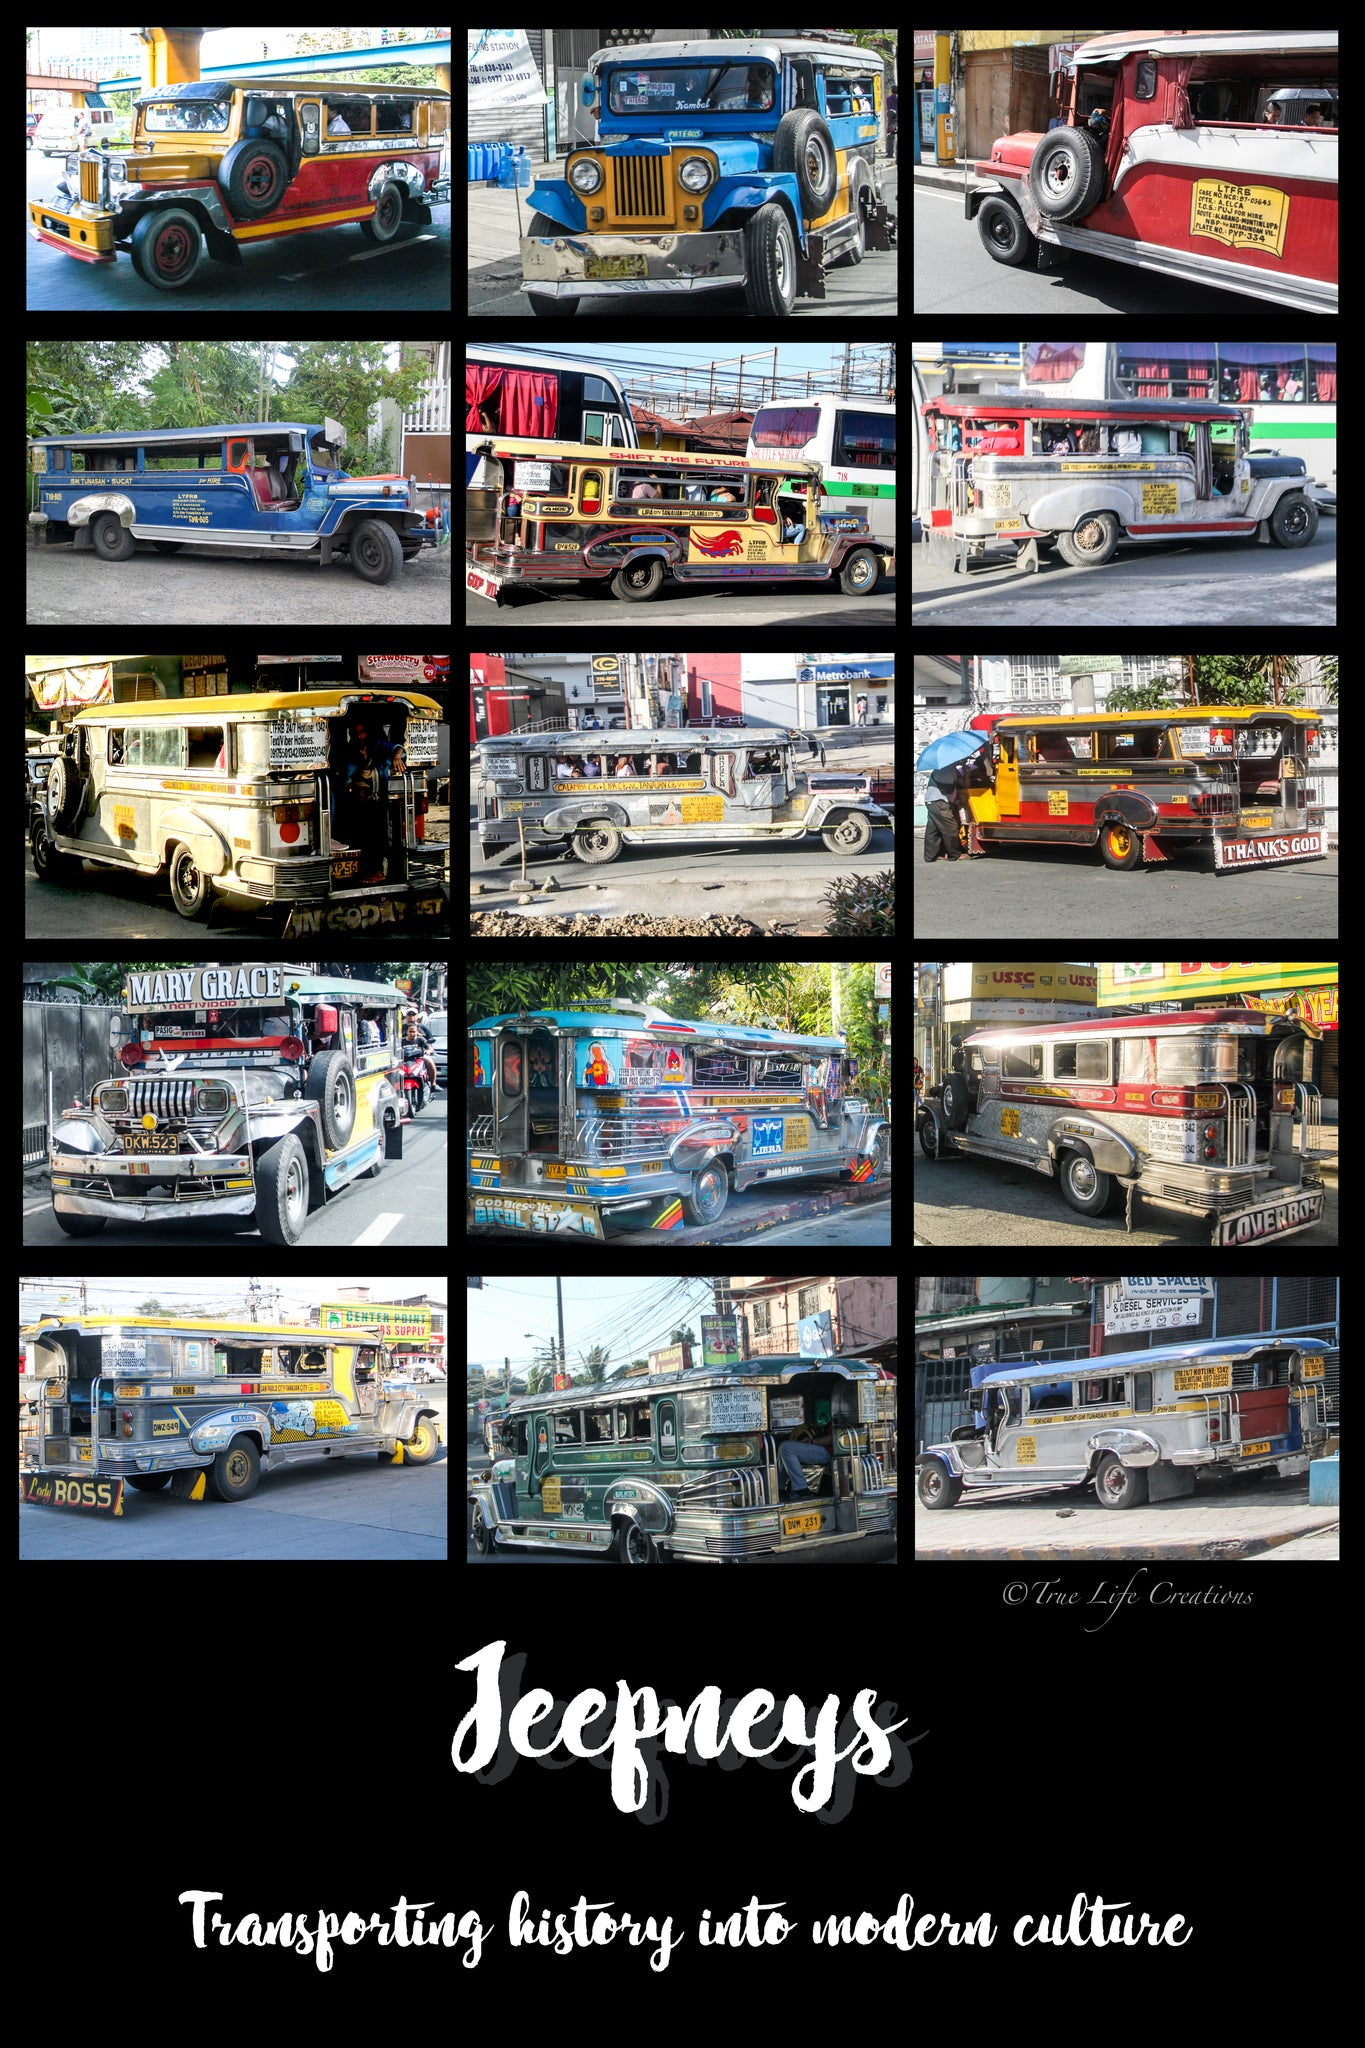 """Oh My Jeepneys"" Poster 20x16"